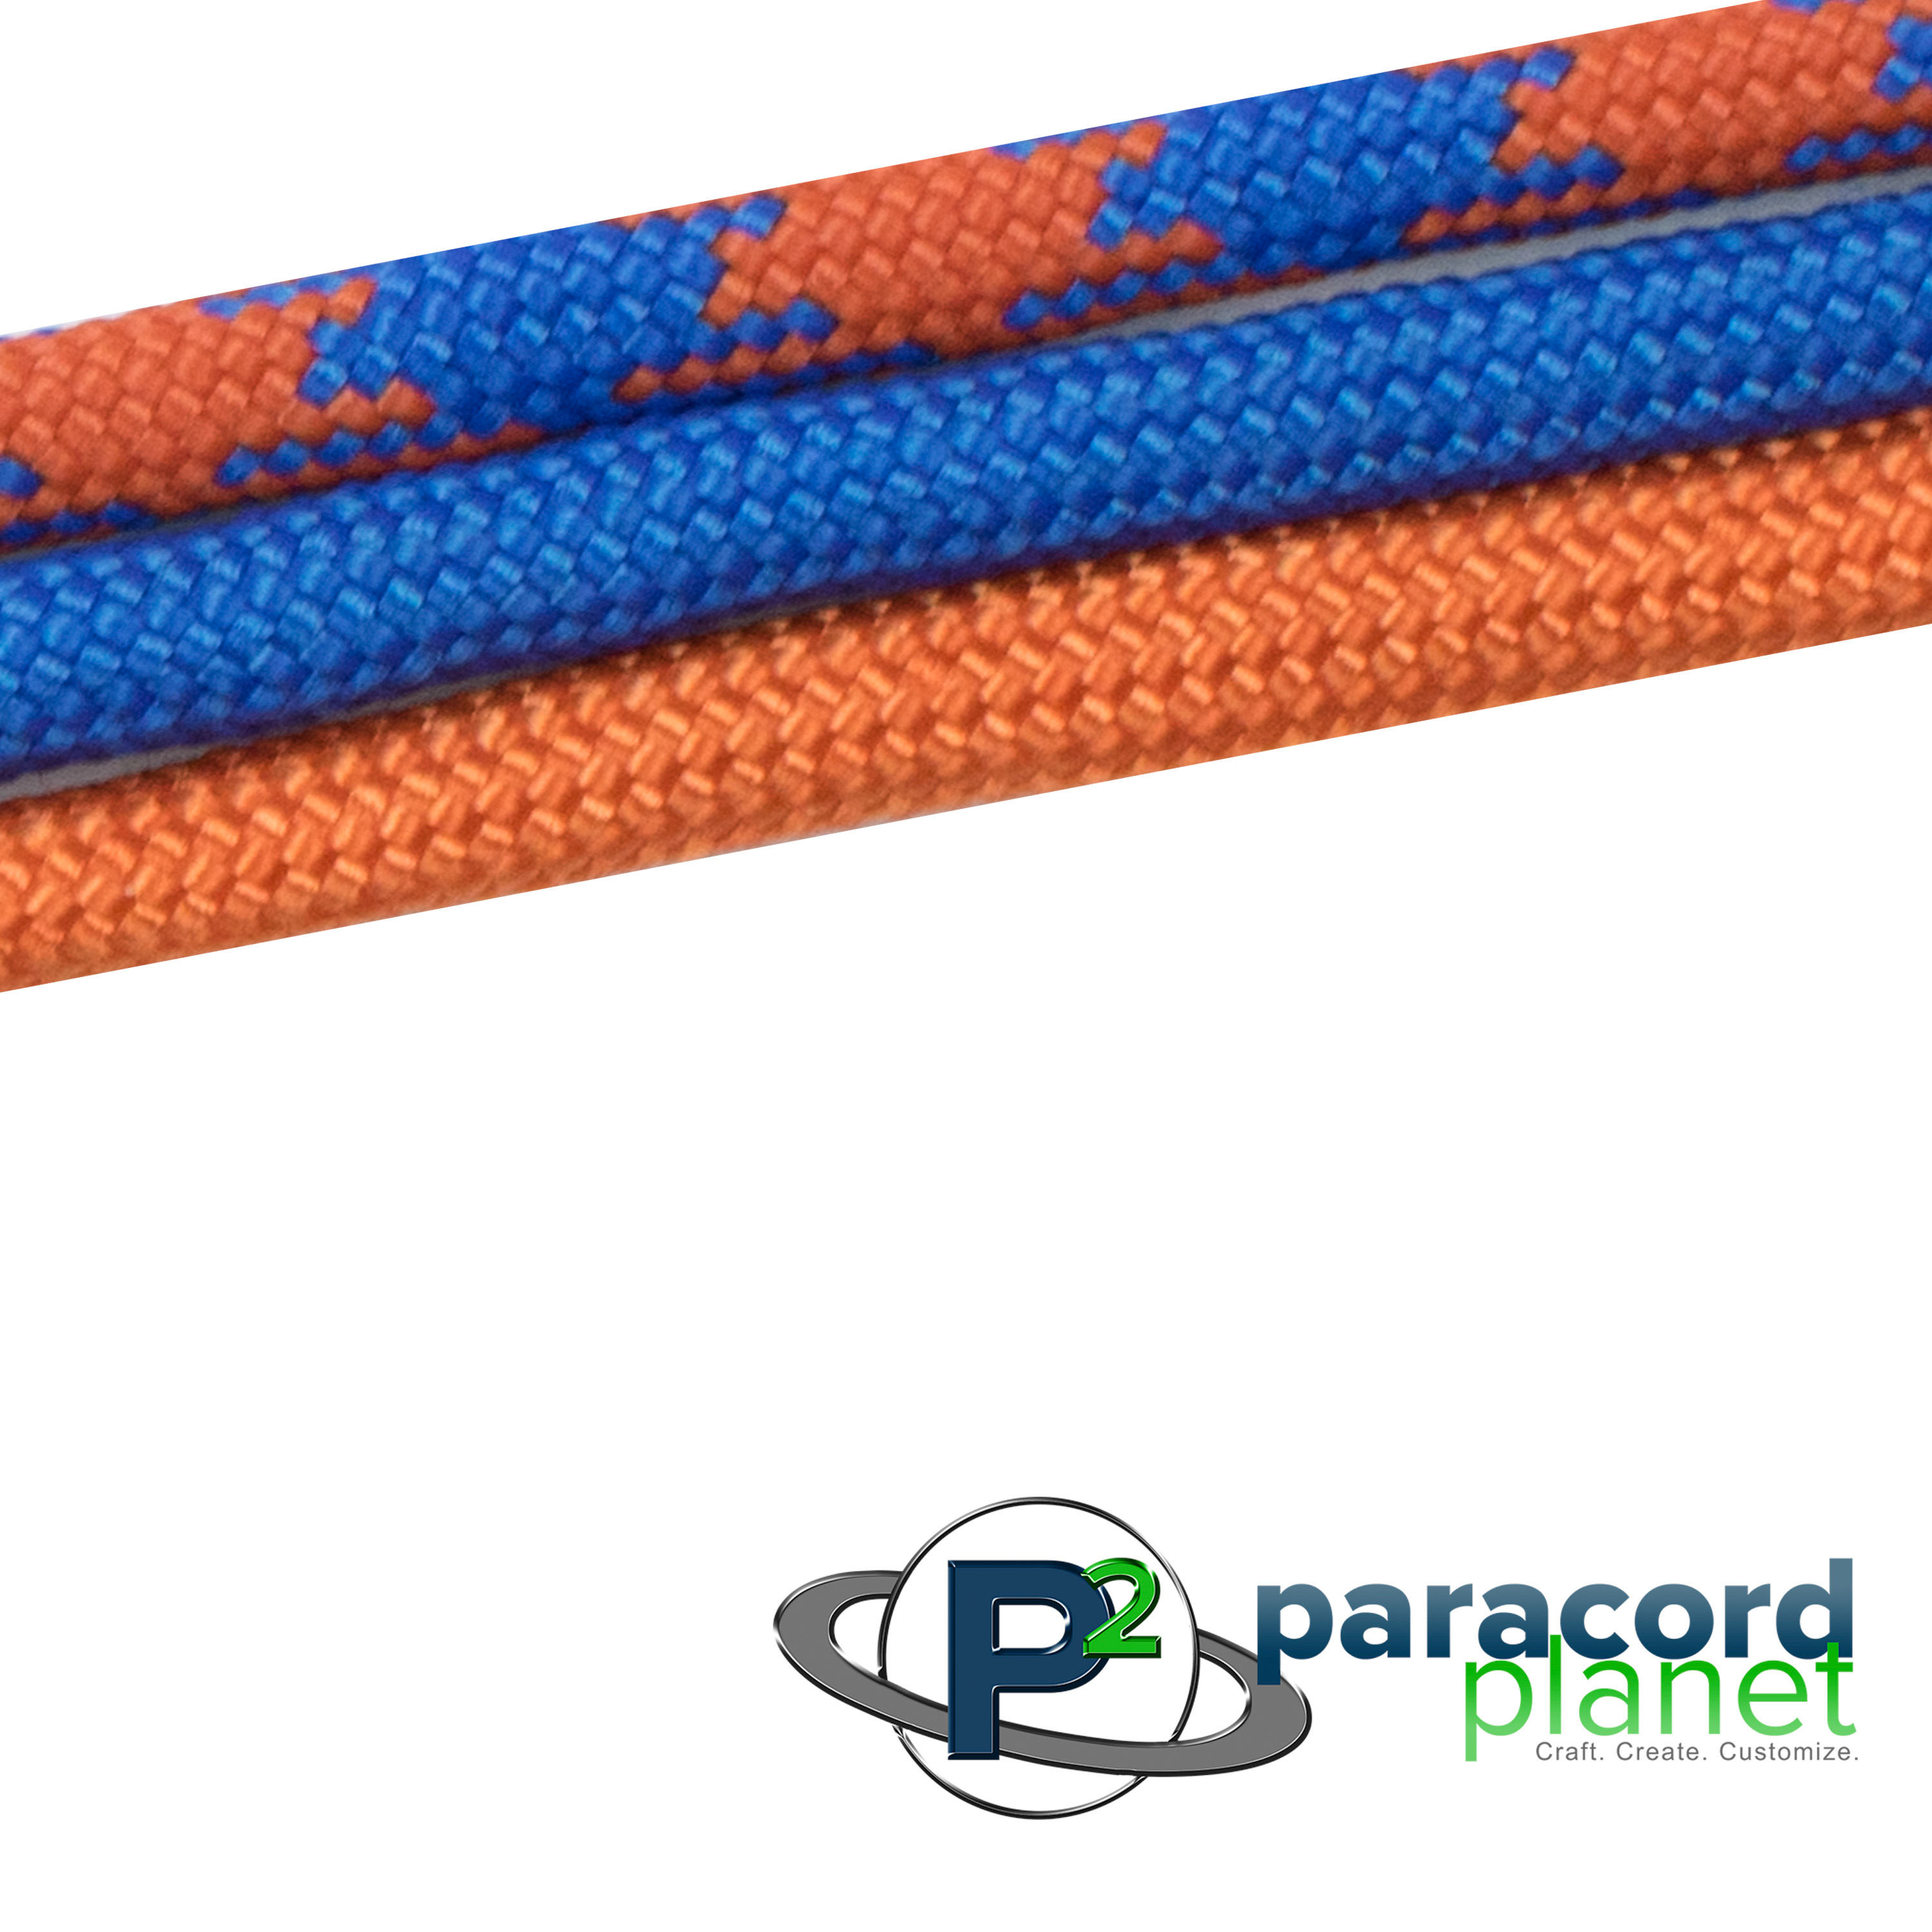 Paracord Planet's Bracelet Crafting Kits with Buckles